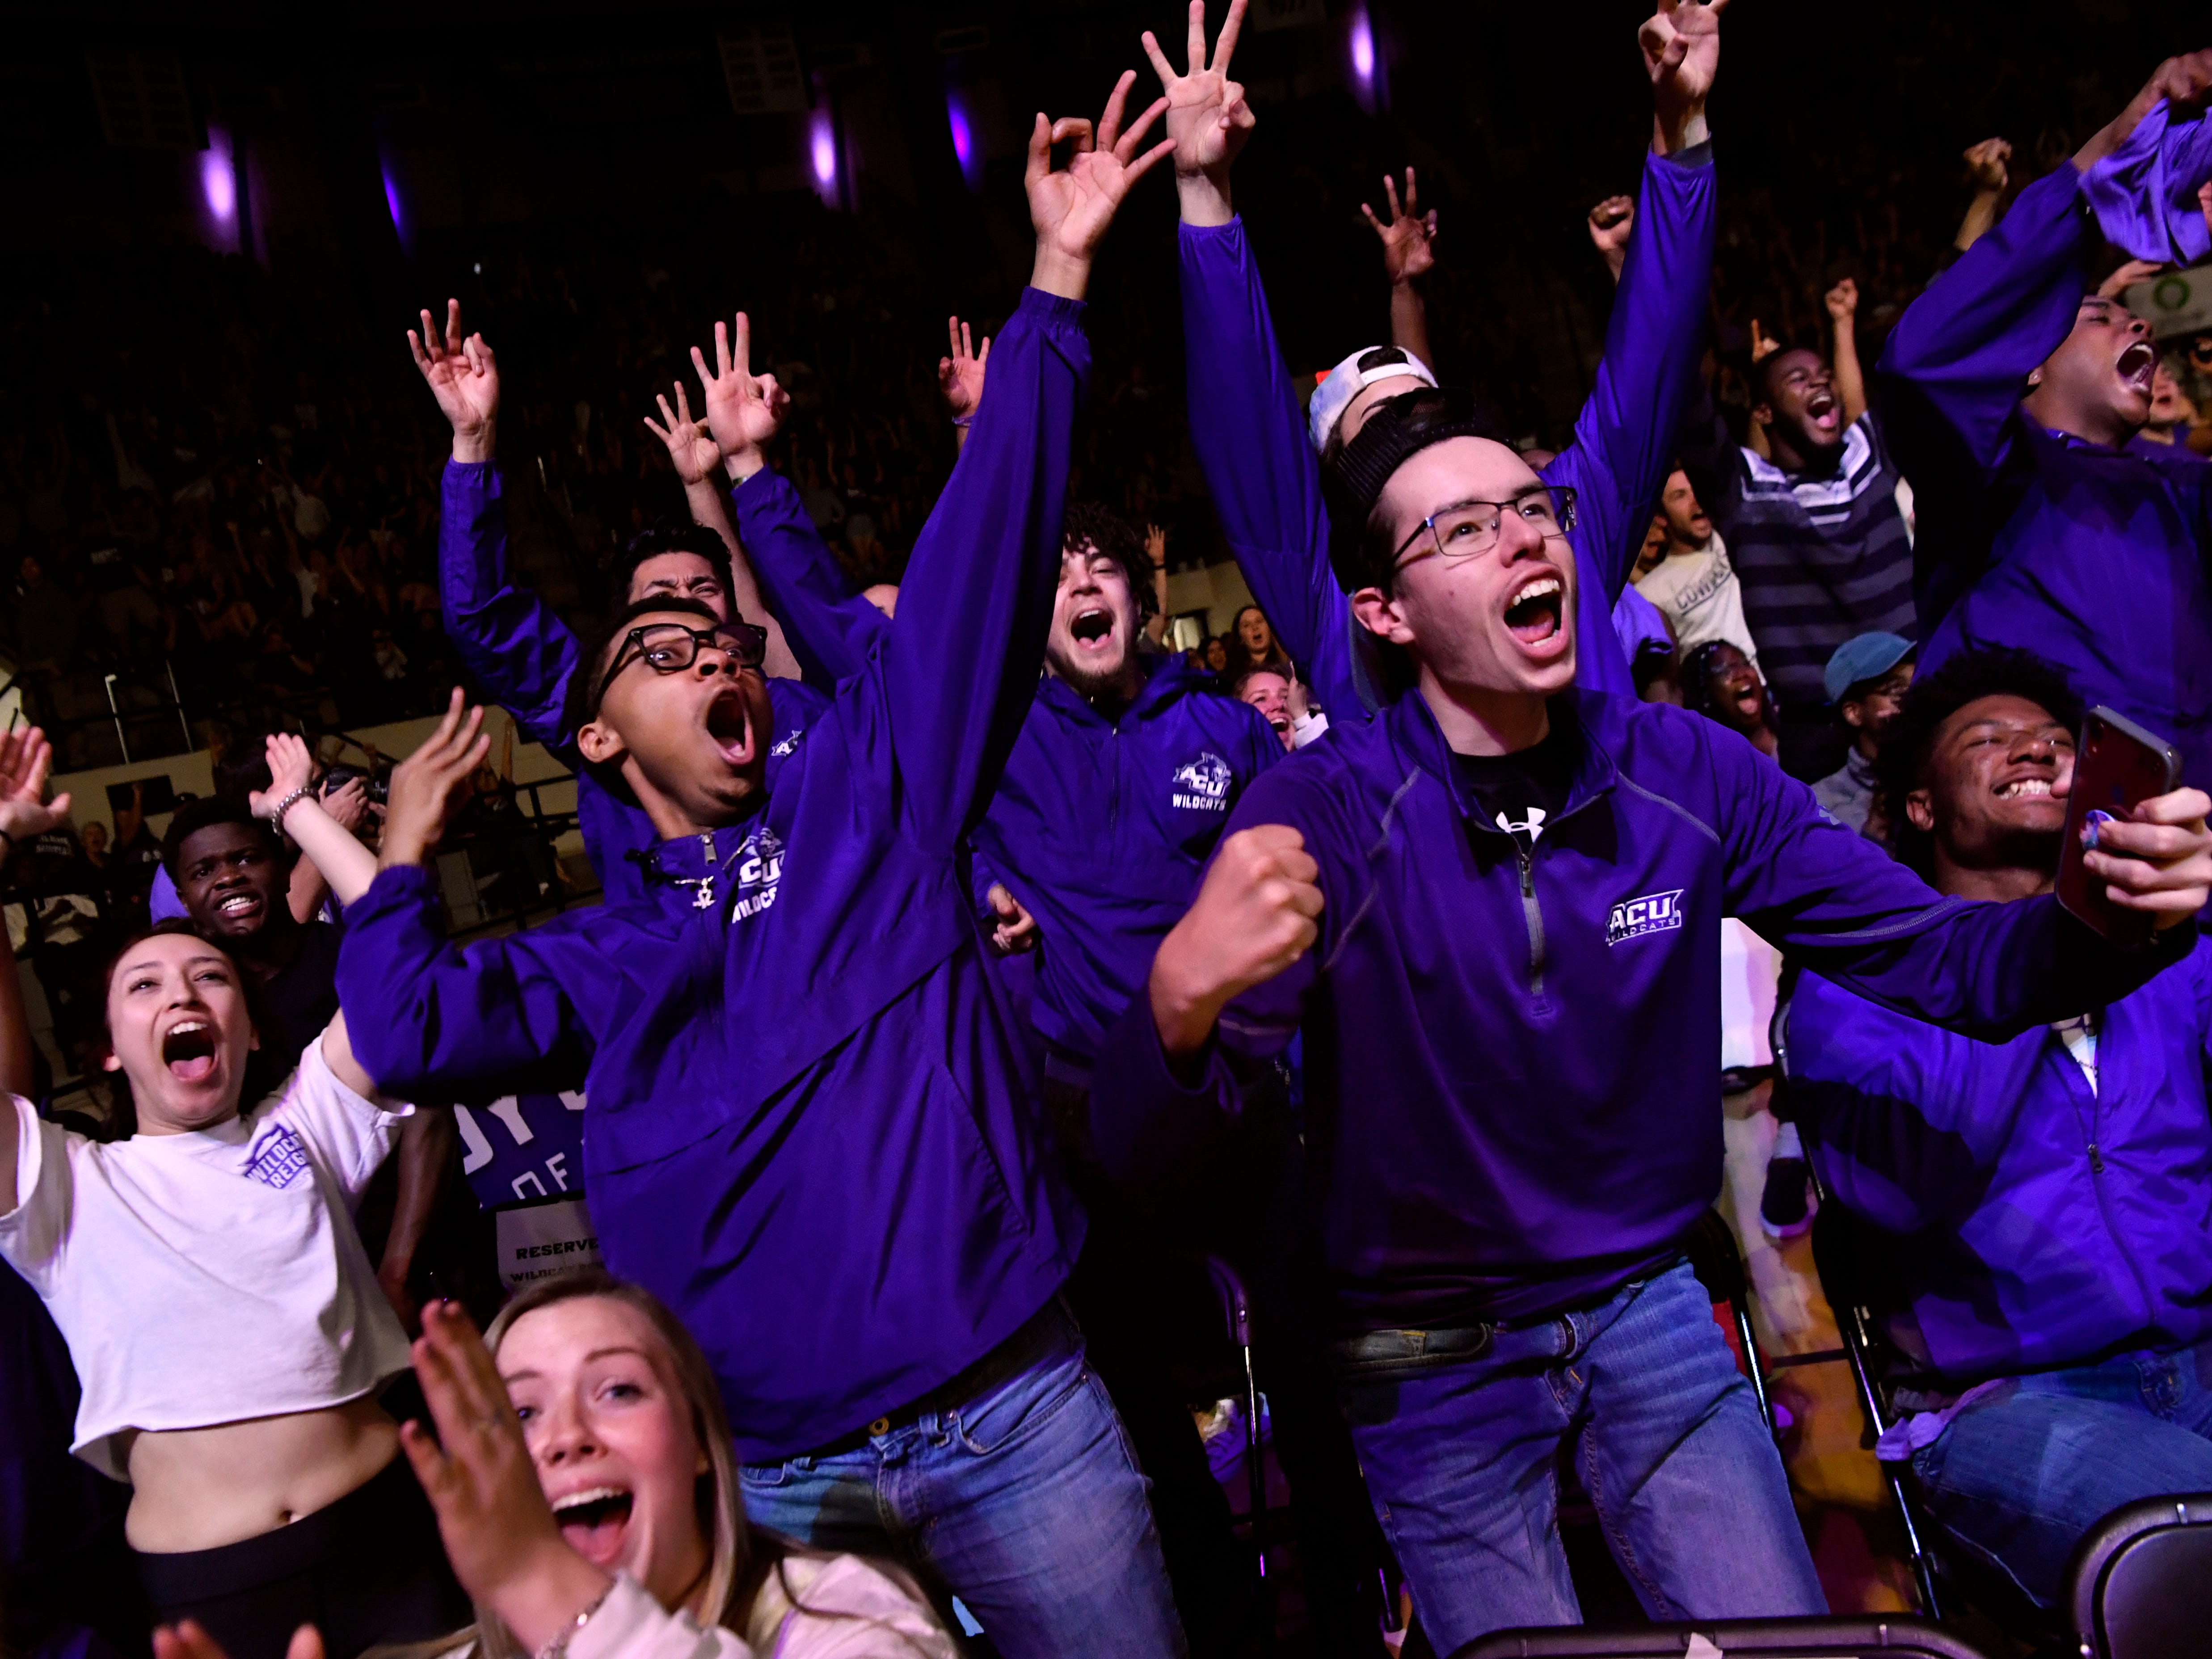 Fans erupt in cheers during a watch party at Abilene Christian University's Moody Coliseum as the Wildcats sink their first three-point basket against the University of Kentucky Thursday March 21, 2019. The ACU men took on the basketball powerhouse in their first-ever trip to the NCAA Tournament, ending with a loss to No. 2 UK, 79-44.